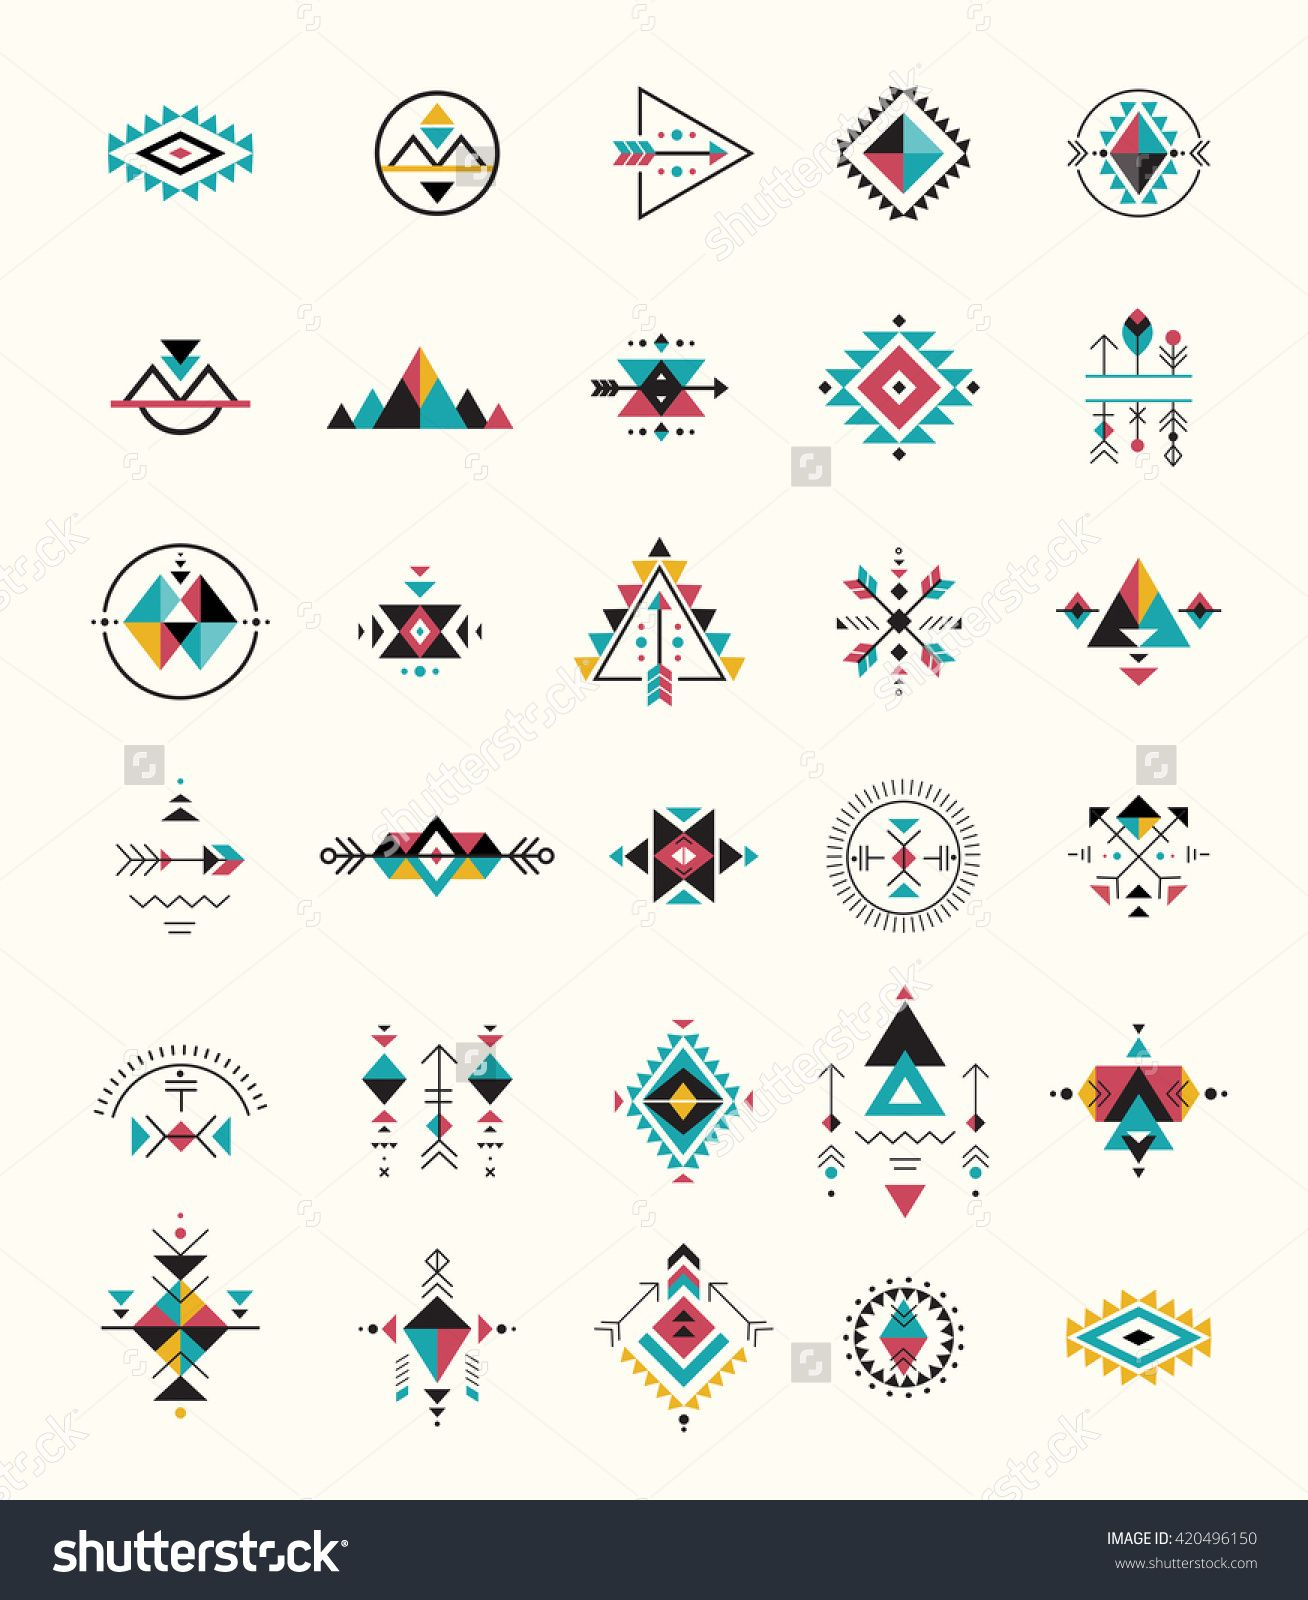 Esoteric, Alchemy, Boho, Bohemian Sacred Geometry, Tribal And Aztec, Sacred Geometry, Mystic Shapes, Symbols Stock-Vektorgrafik - Illustration 420496150 : Shutterstock #aztec